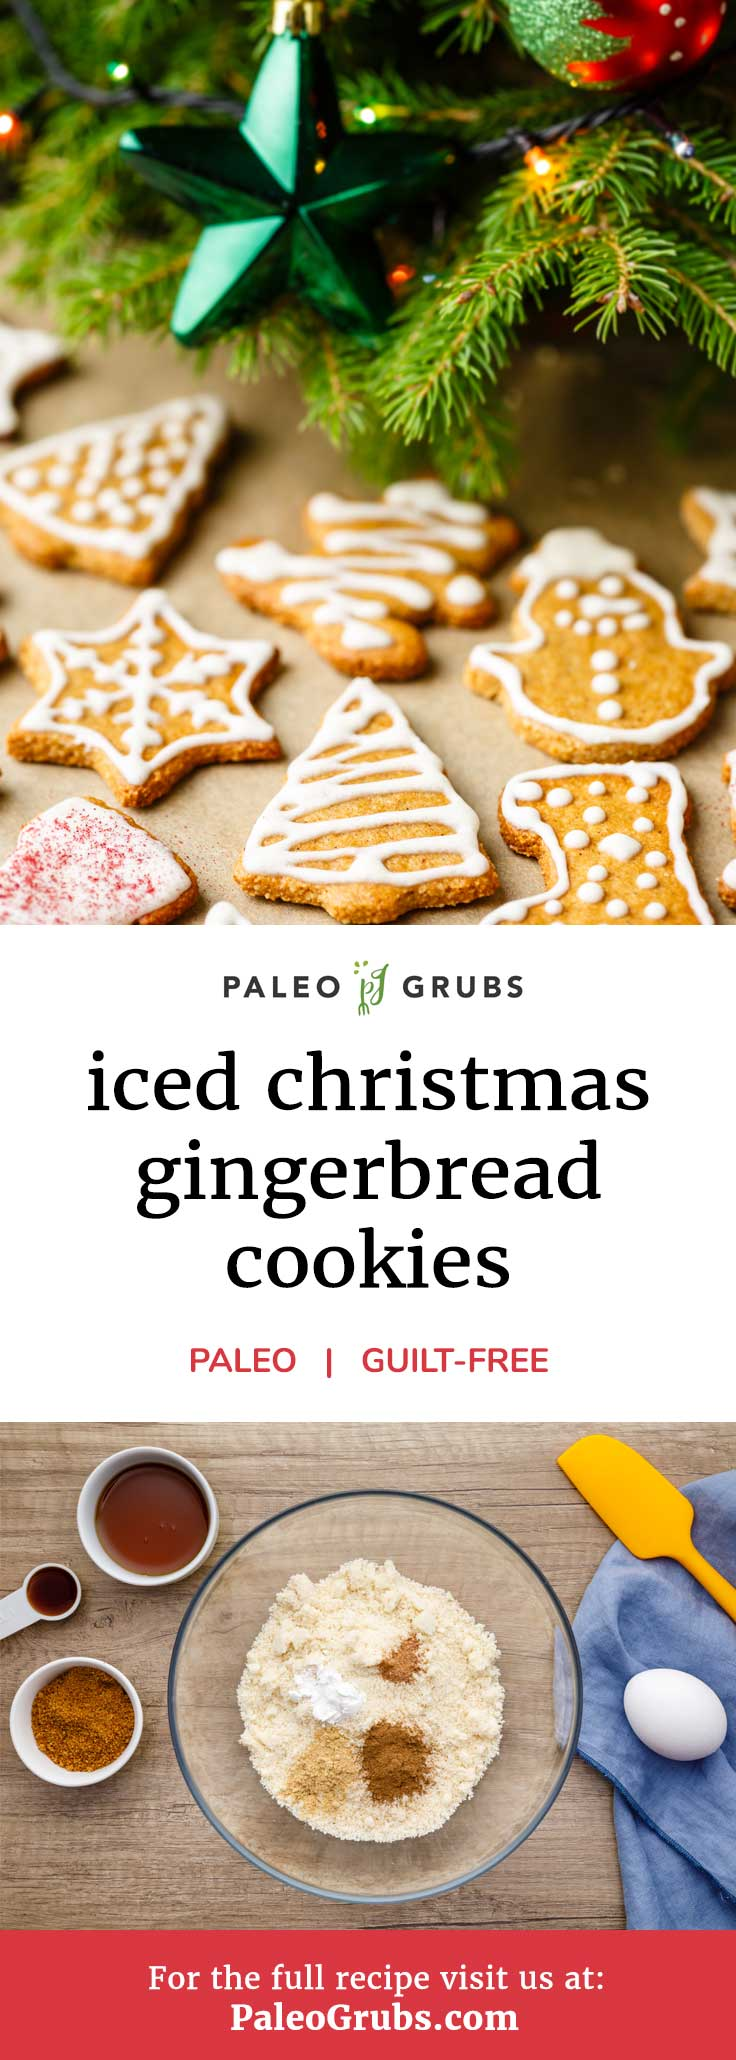 There's nothing quite like a good gingerbread cookie. There's just something about them that makes it nearly impossible to only have just one. To that end, I want to share this recipe for paleo gingerbread cookies with a homemade icing. You won't believe how tasty these cookies are thanks to their fantastic mix of spices including cinnamon, nutmeg, and ginger.